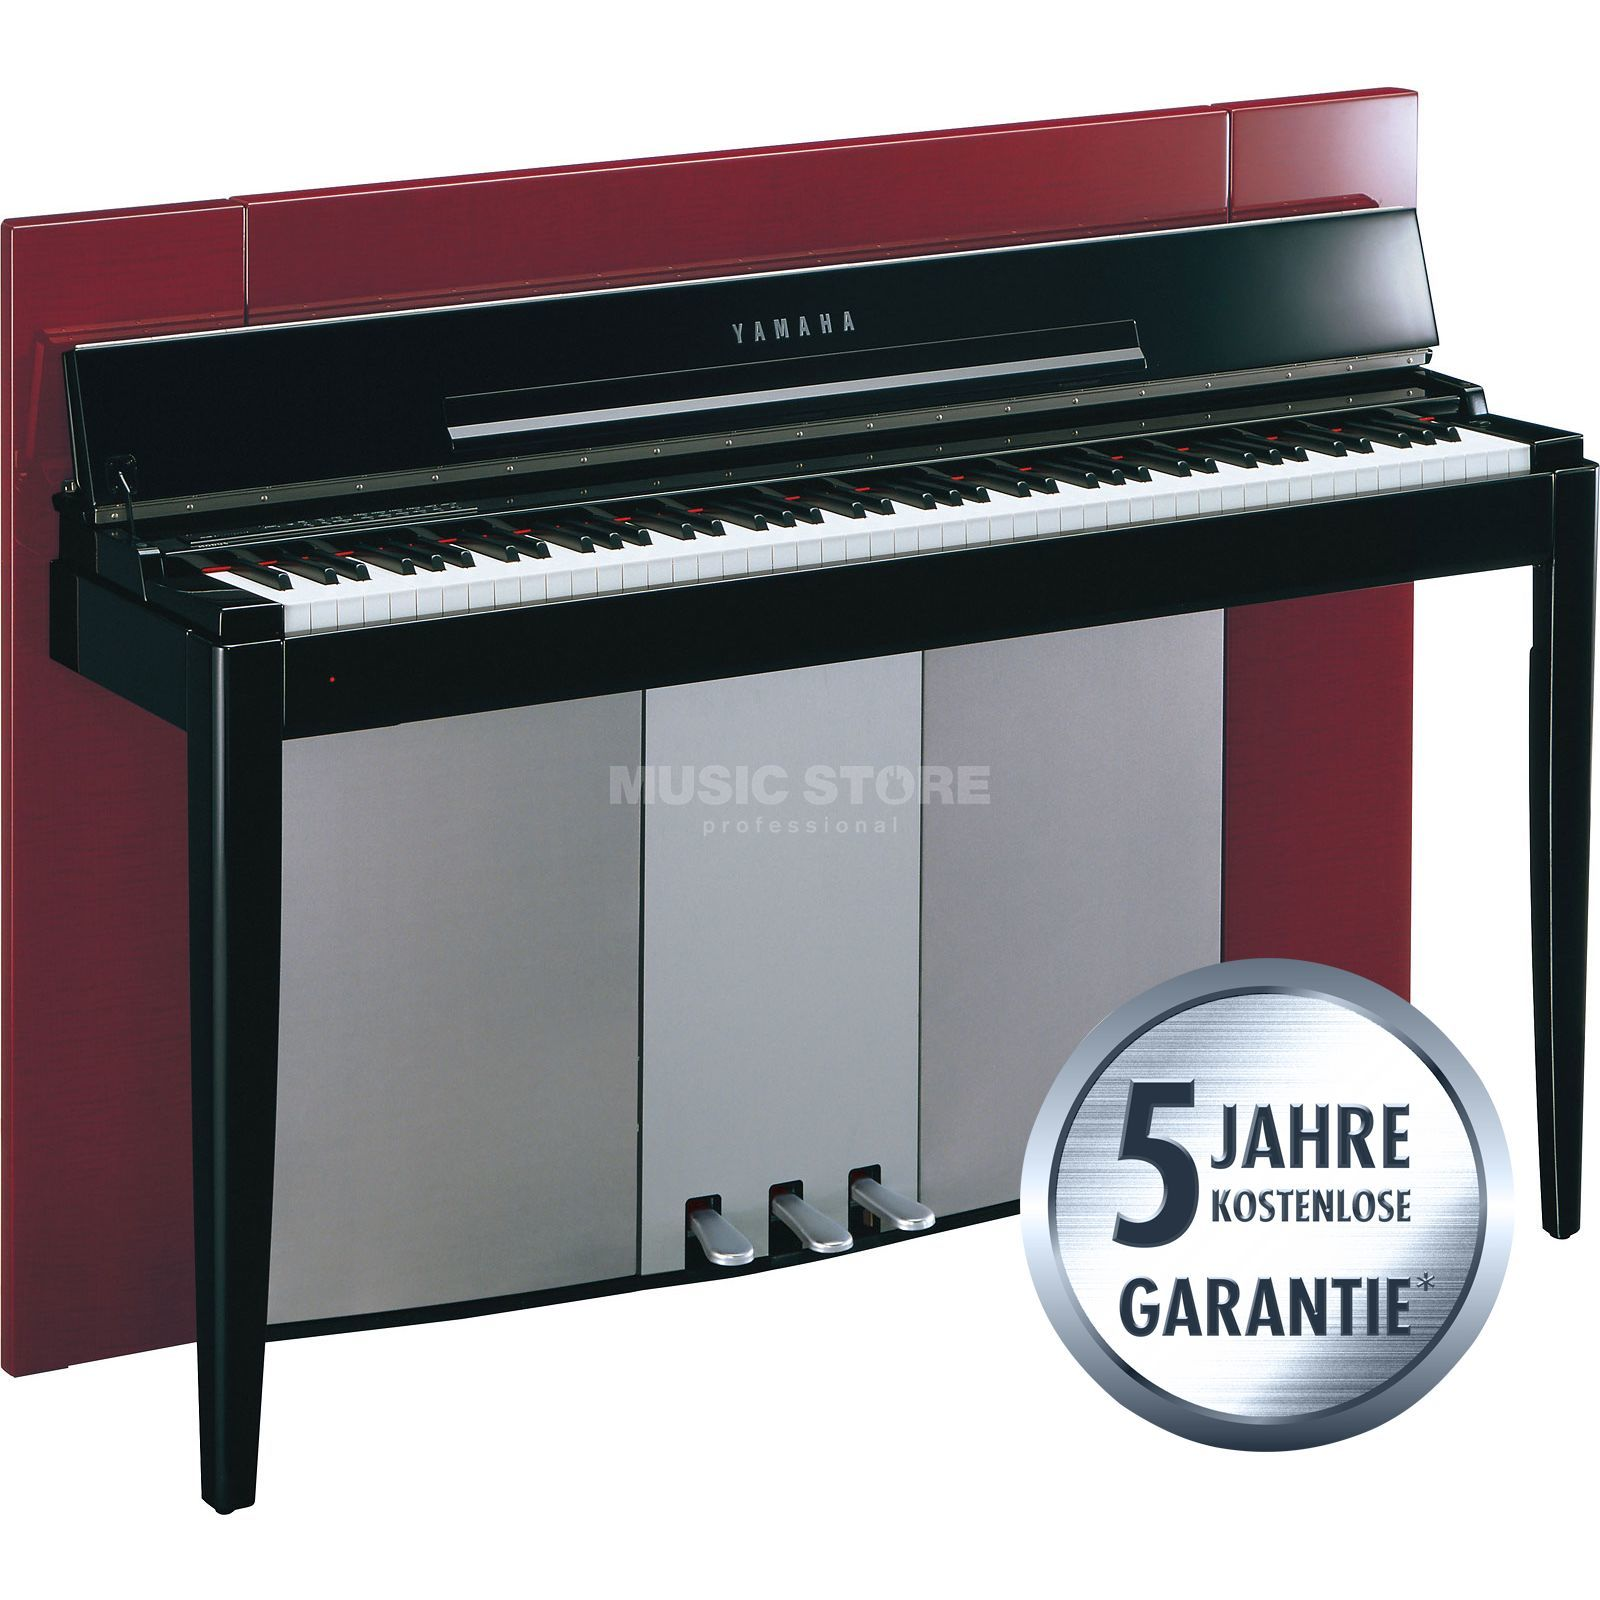 Yamaha Modus F02 PR Digital Piano Polished Red Zdjęcie produktu